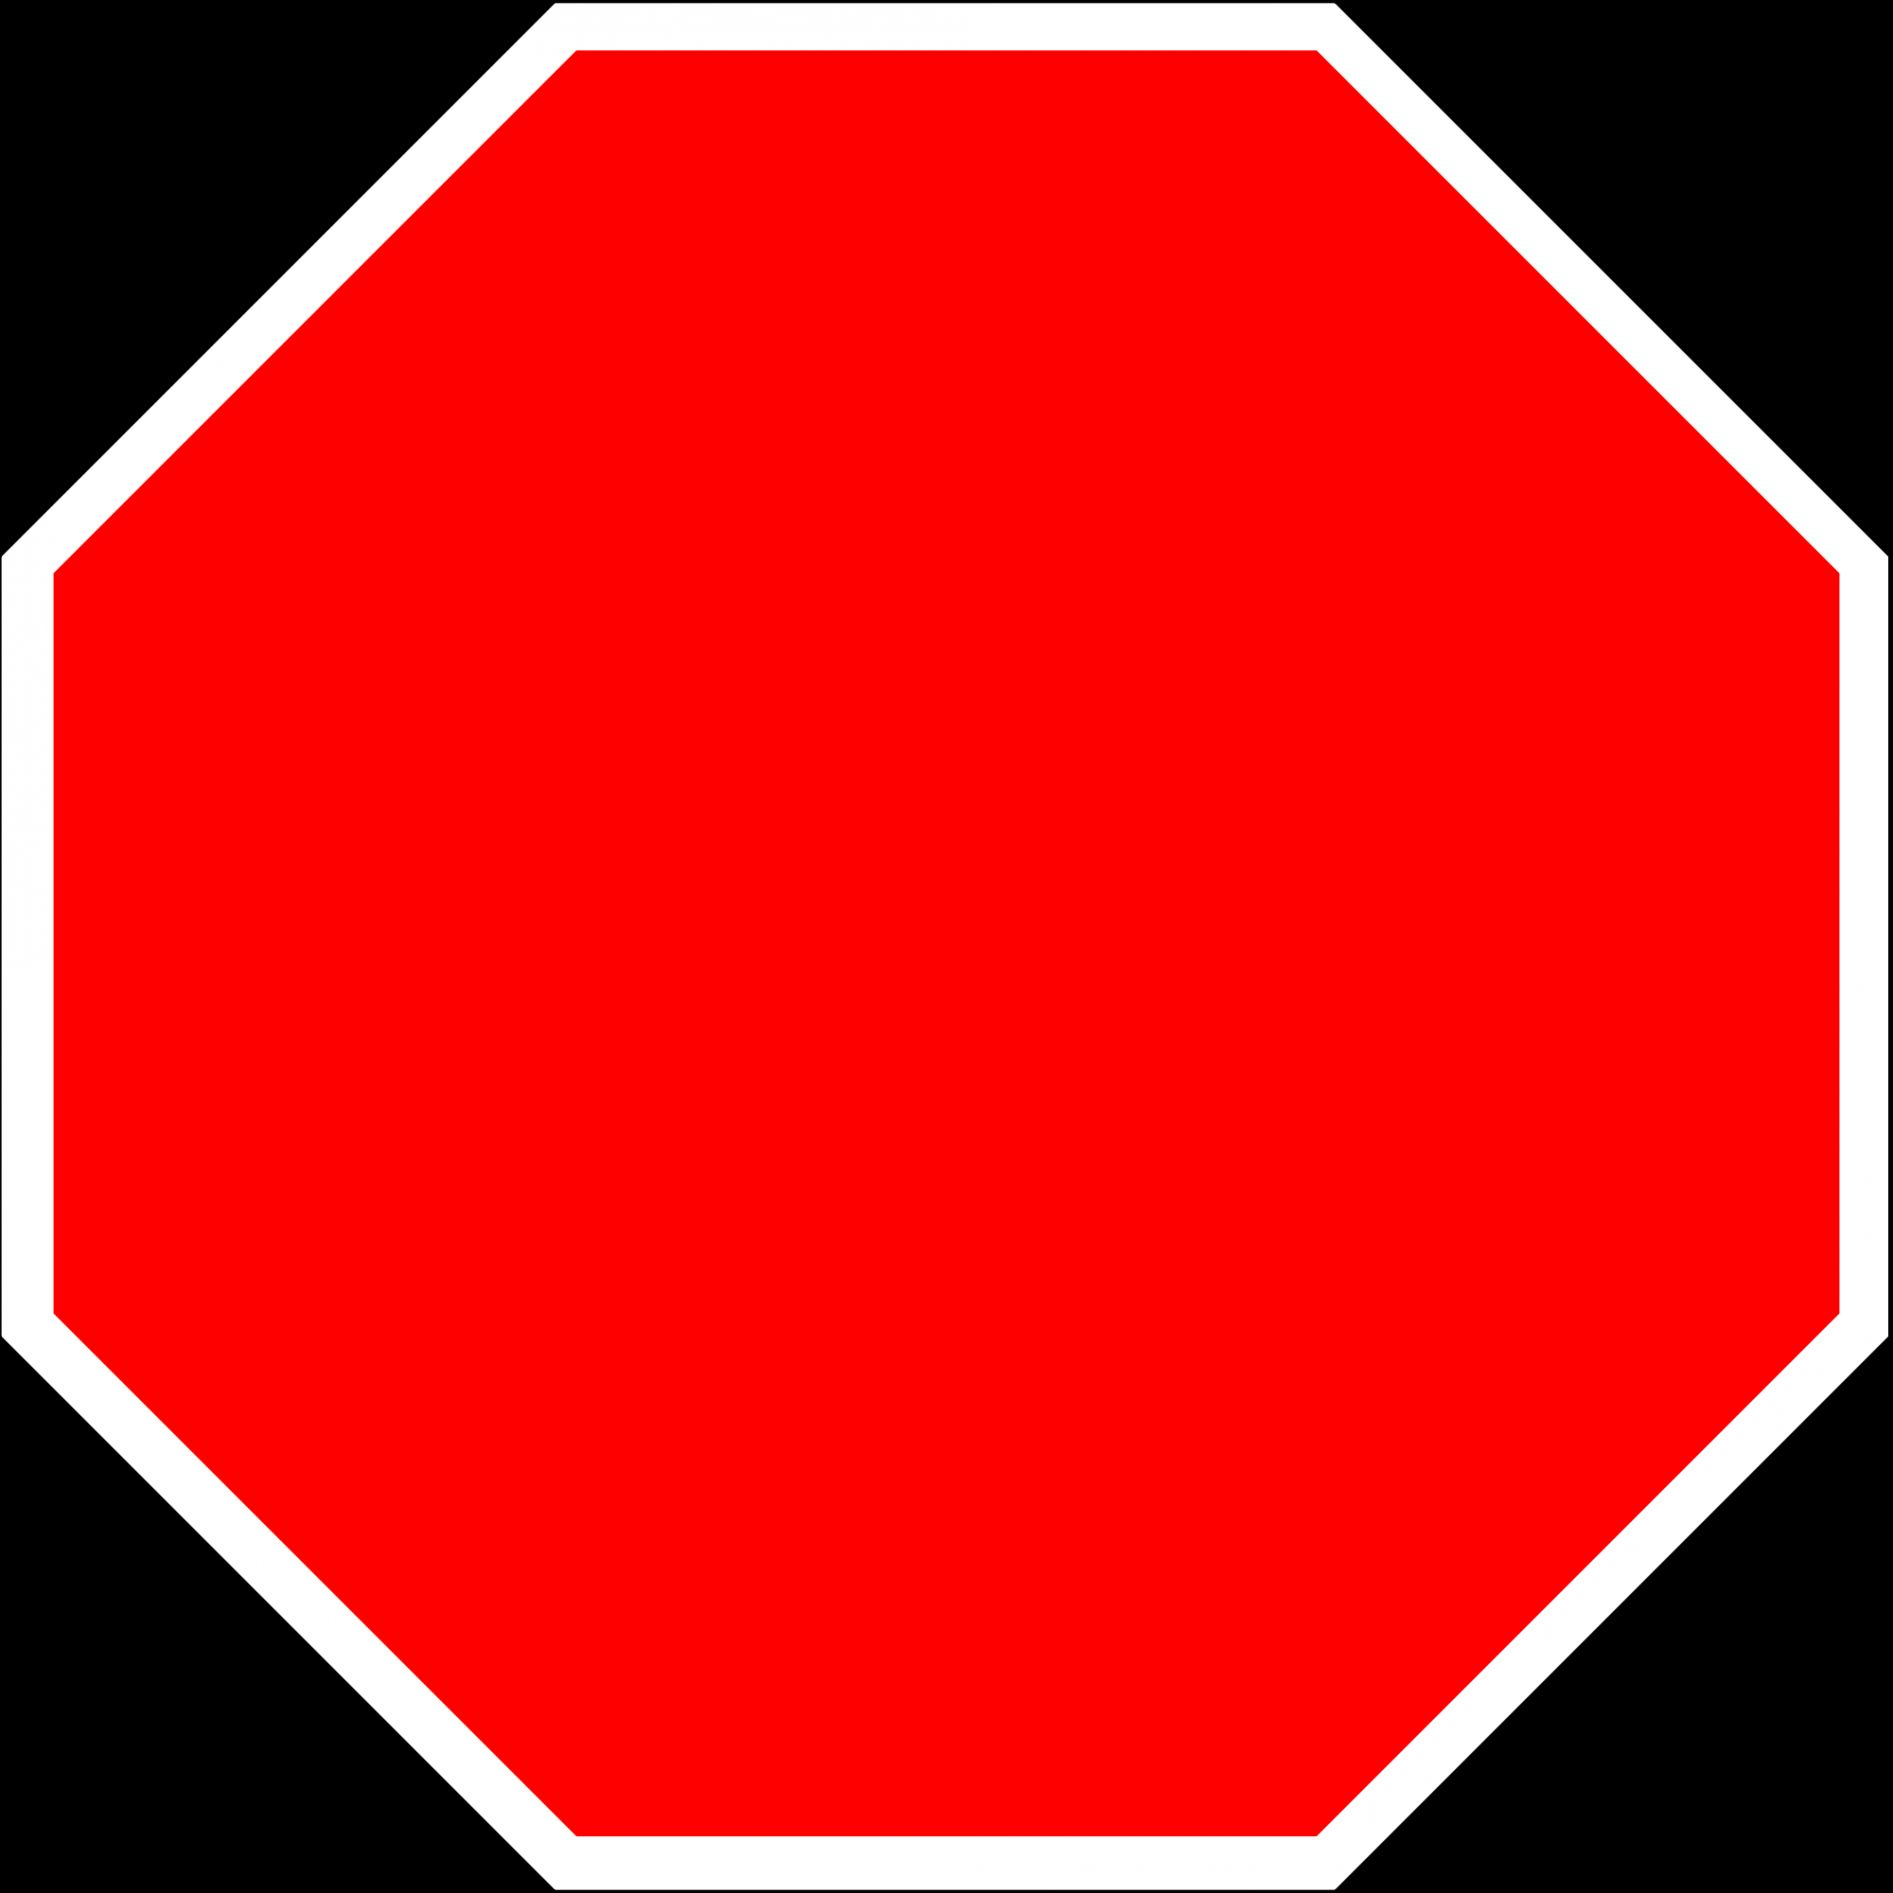 It's just a graphic of Clean Printable Picture of a Stop Sign